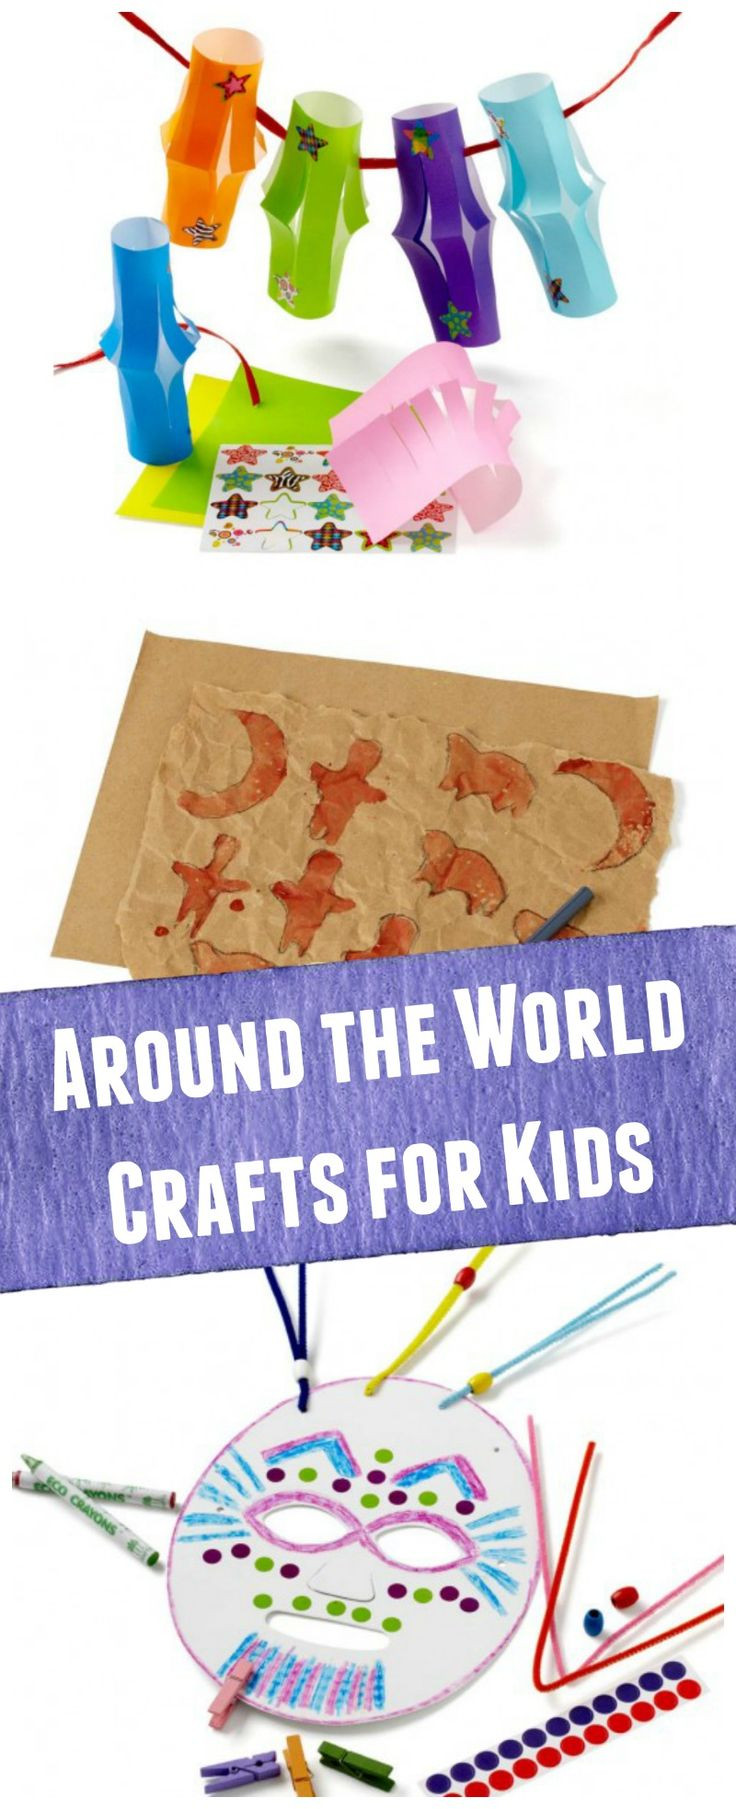 Best ideas about Around The World Crafts For Kids . Save or Pin Best 25 Cultural crafts ideas on Pinterest Now.